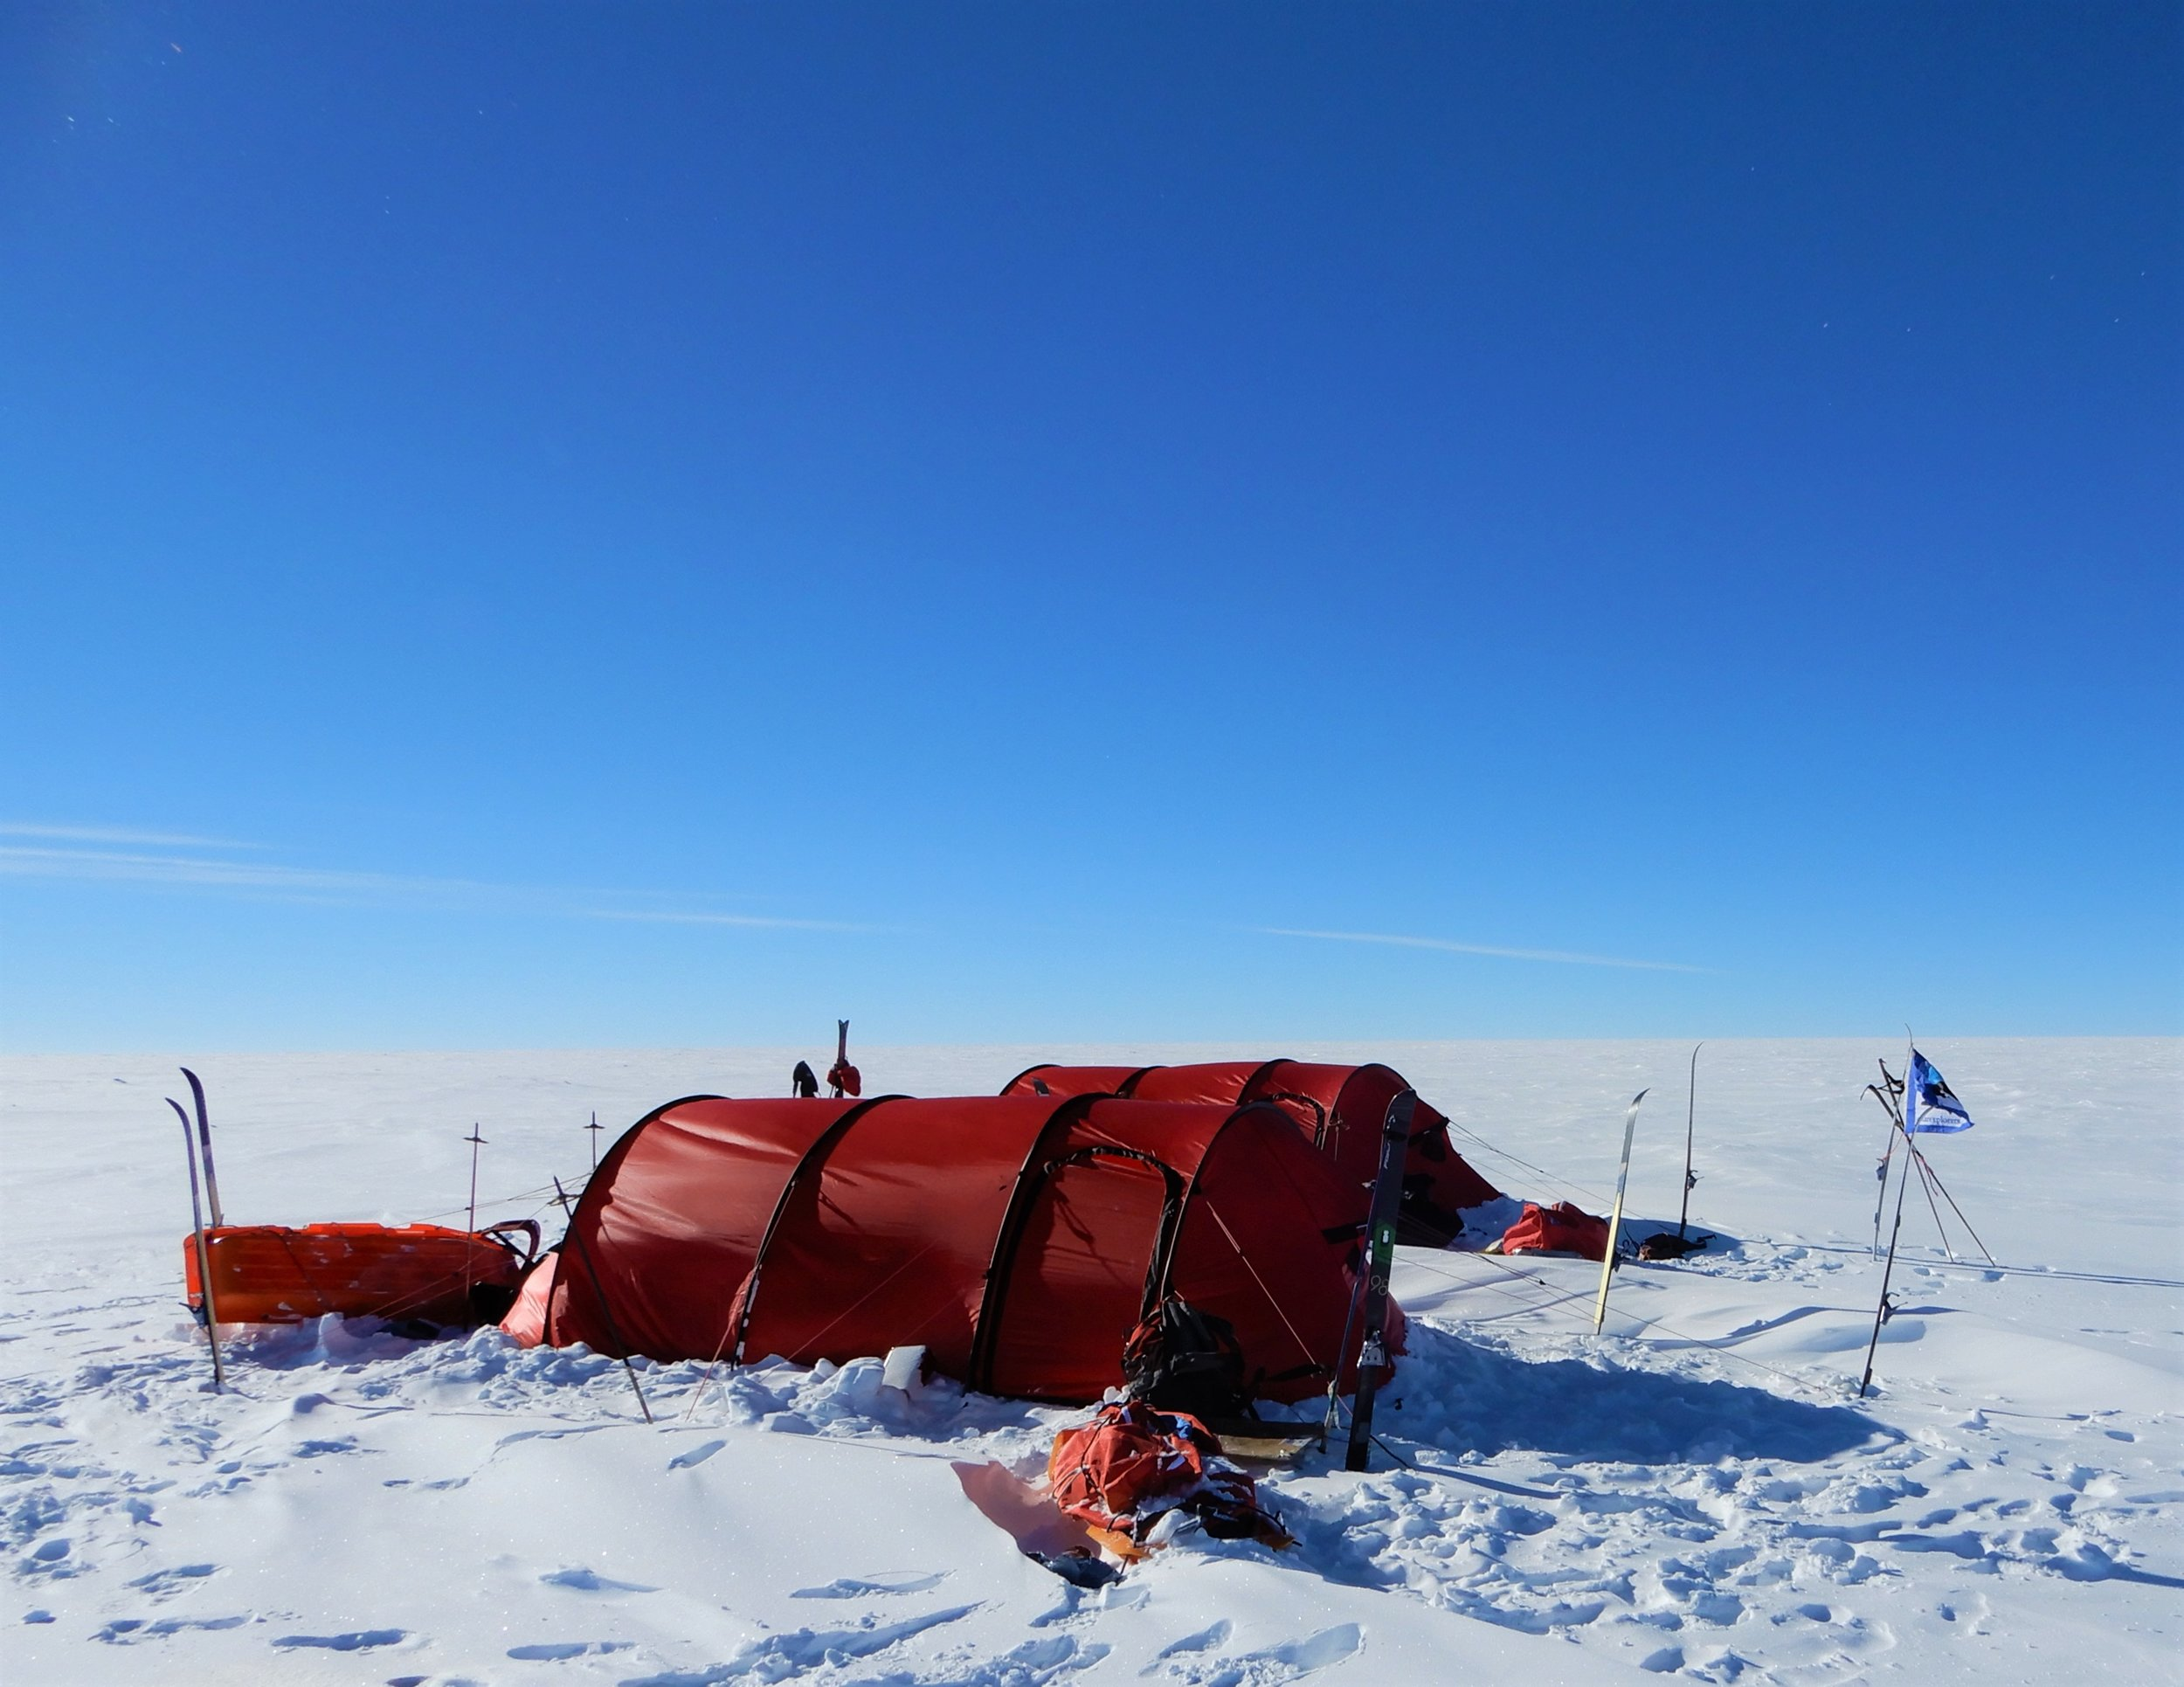 2018-01-06 South Pole (Gibbons CP A900) 002.jpg